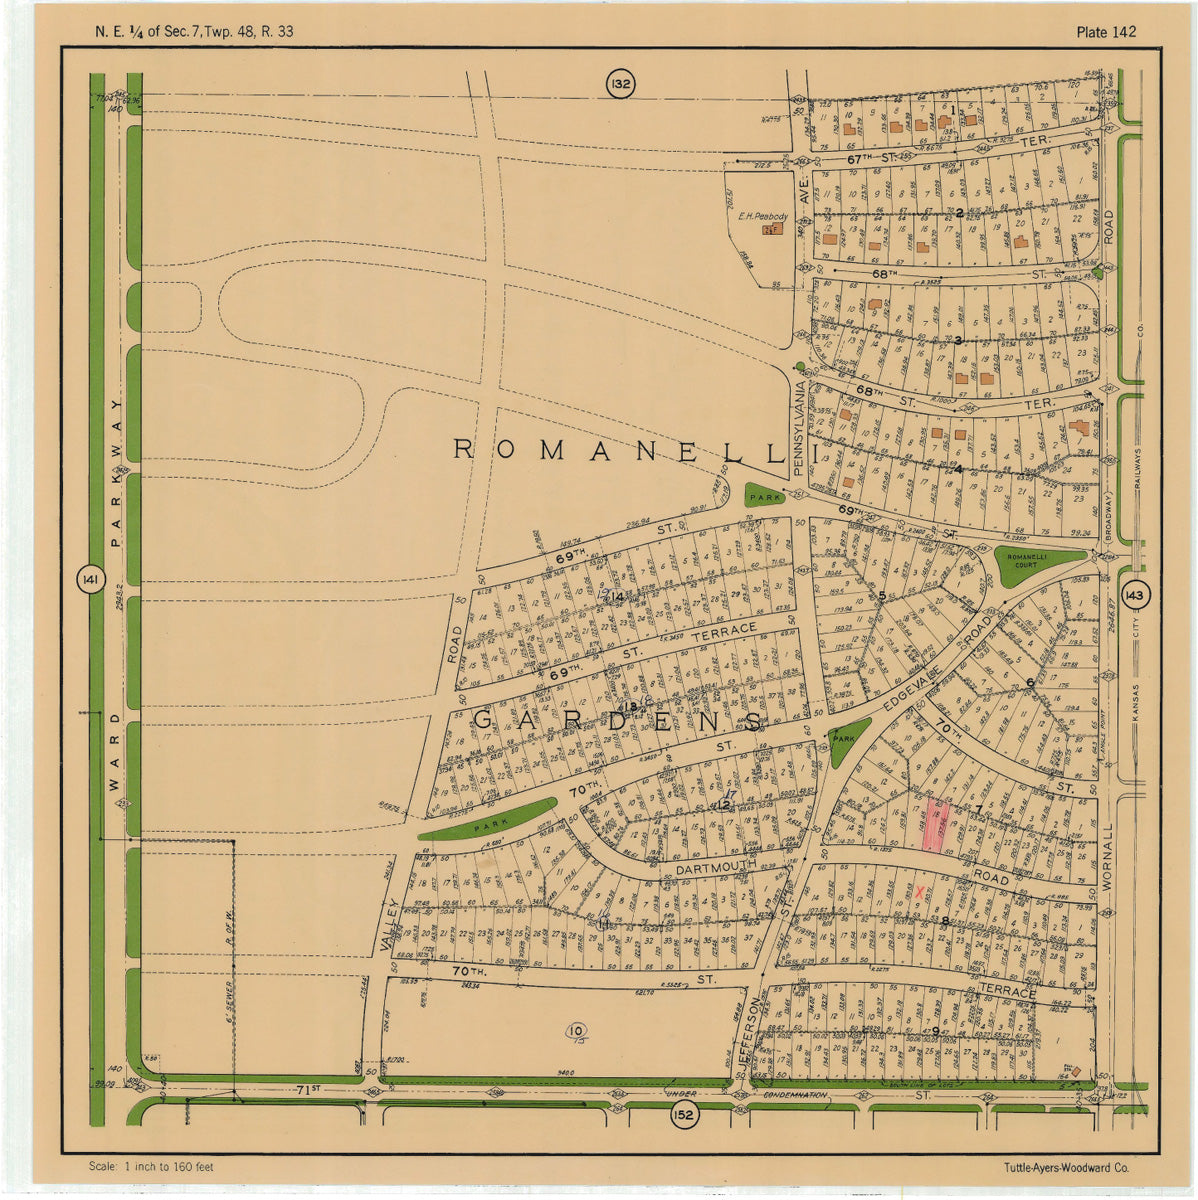 Kansas City 1925 Neighborhood Map - Plate #142 67th-71st Ward Pkwy-Wornall